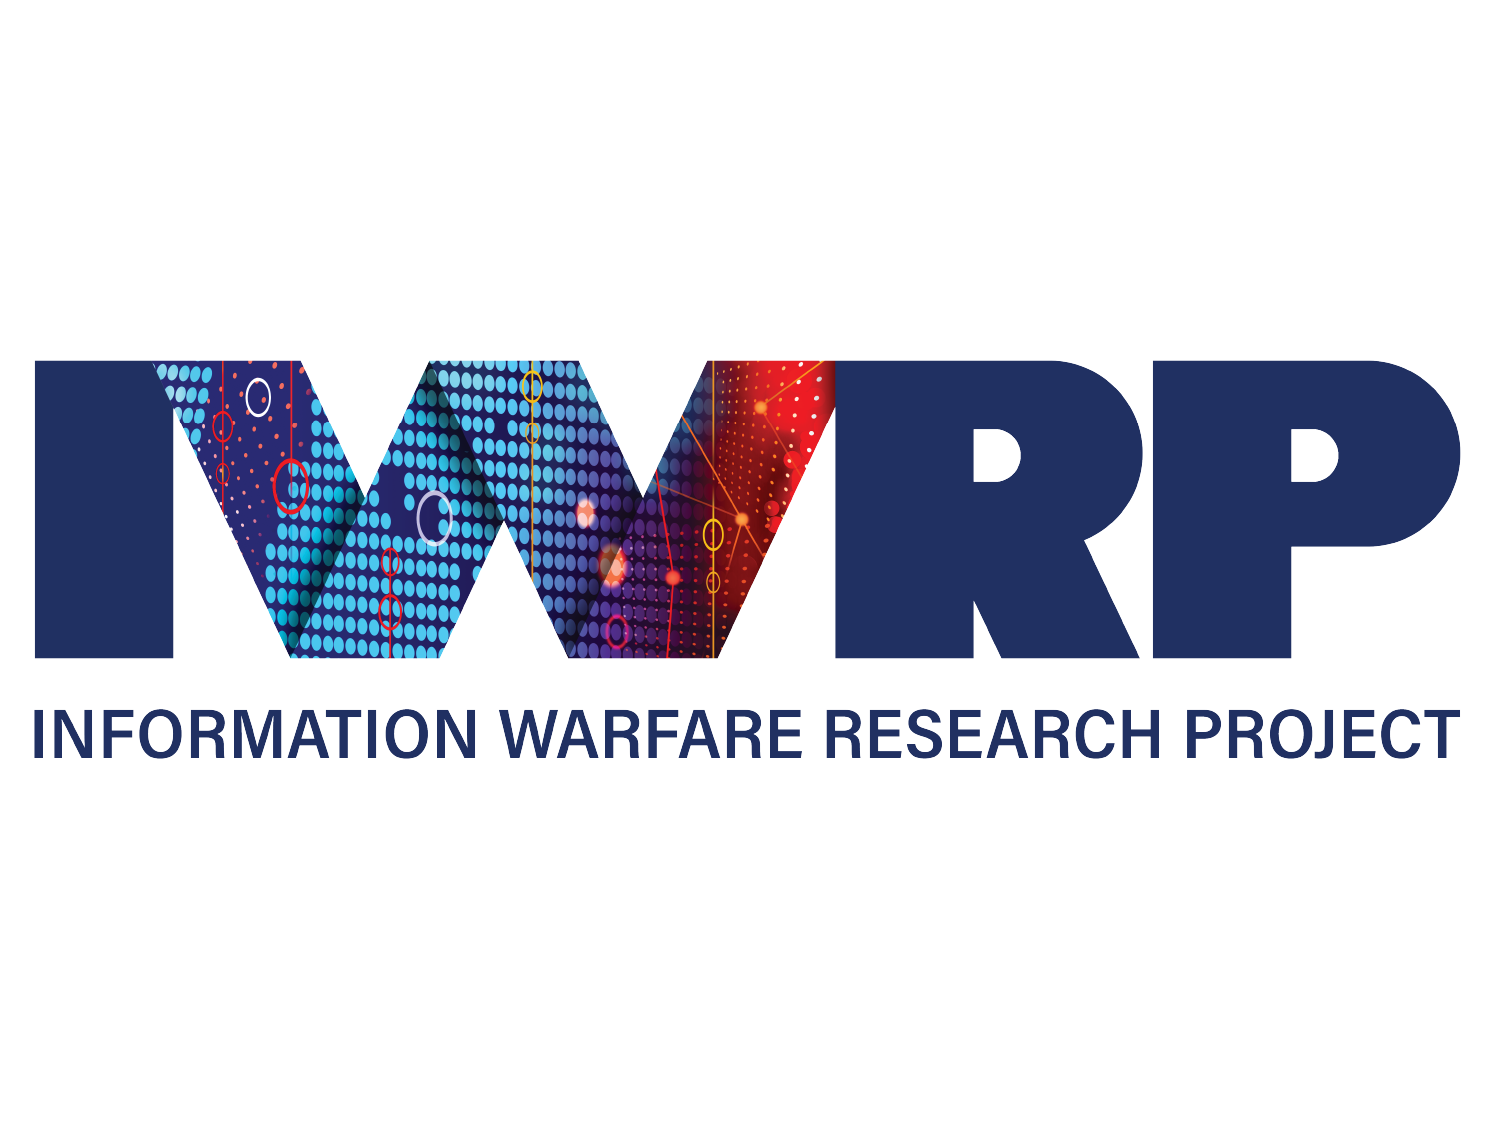 Information Warfare Research Project logo